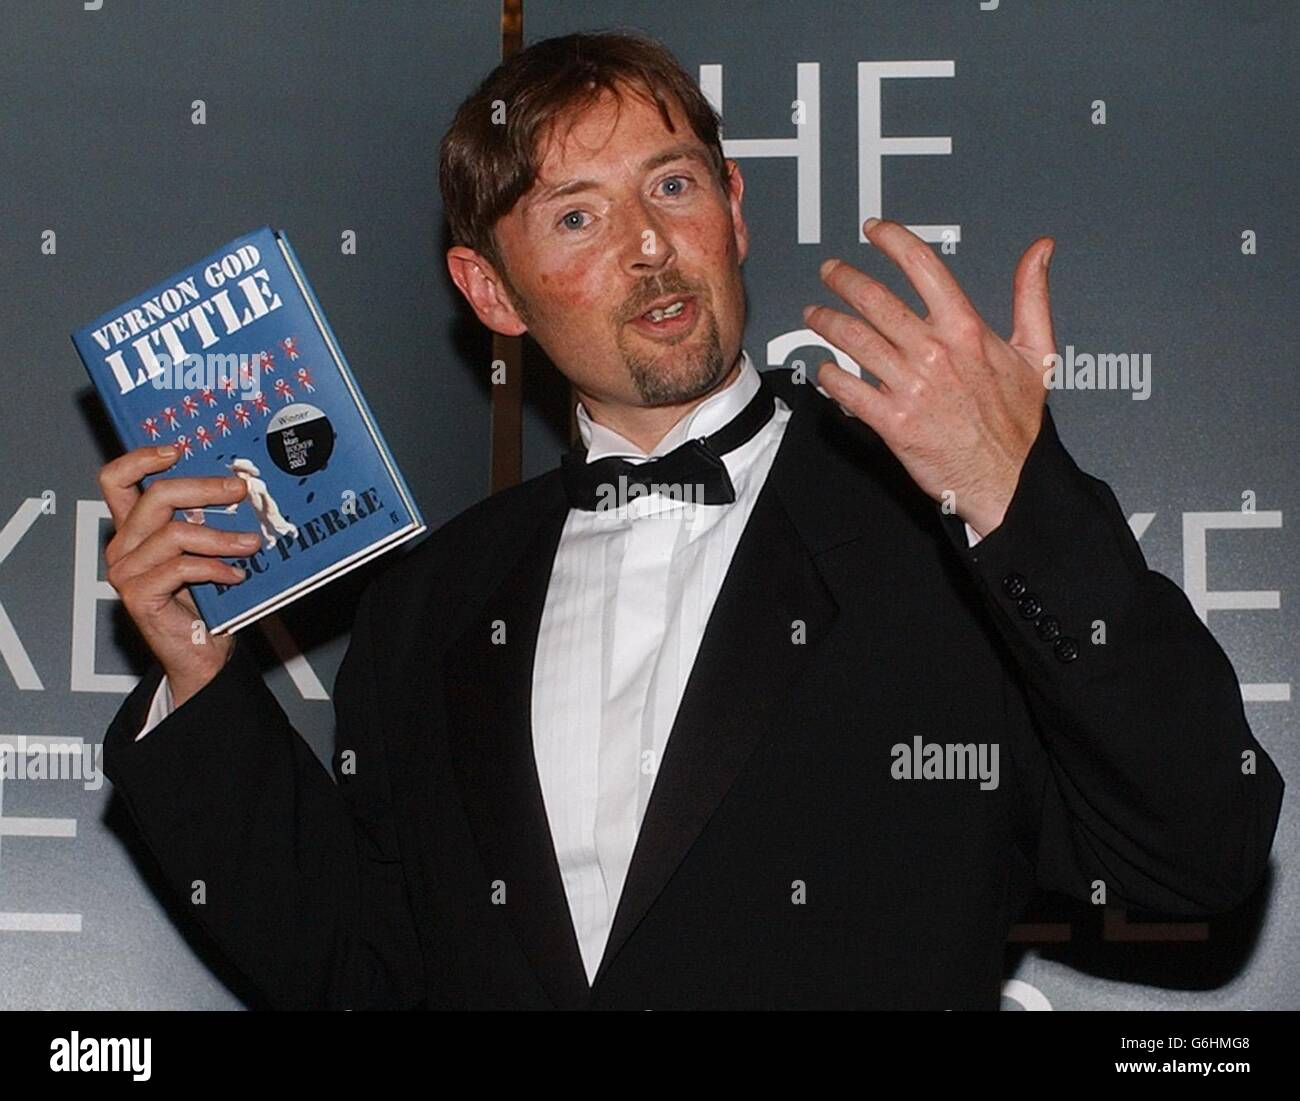 Peter Finlay - Booker Prize - Stock Image